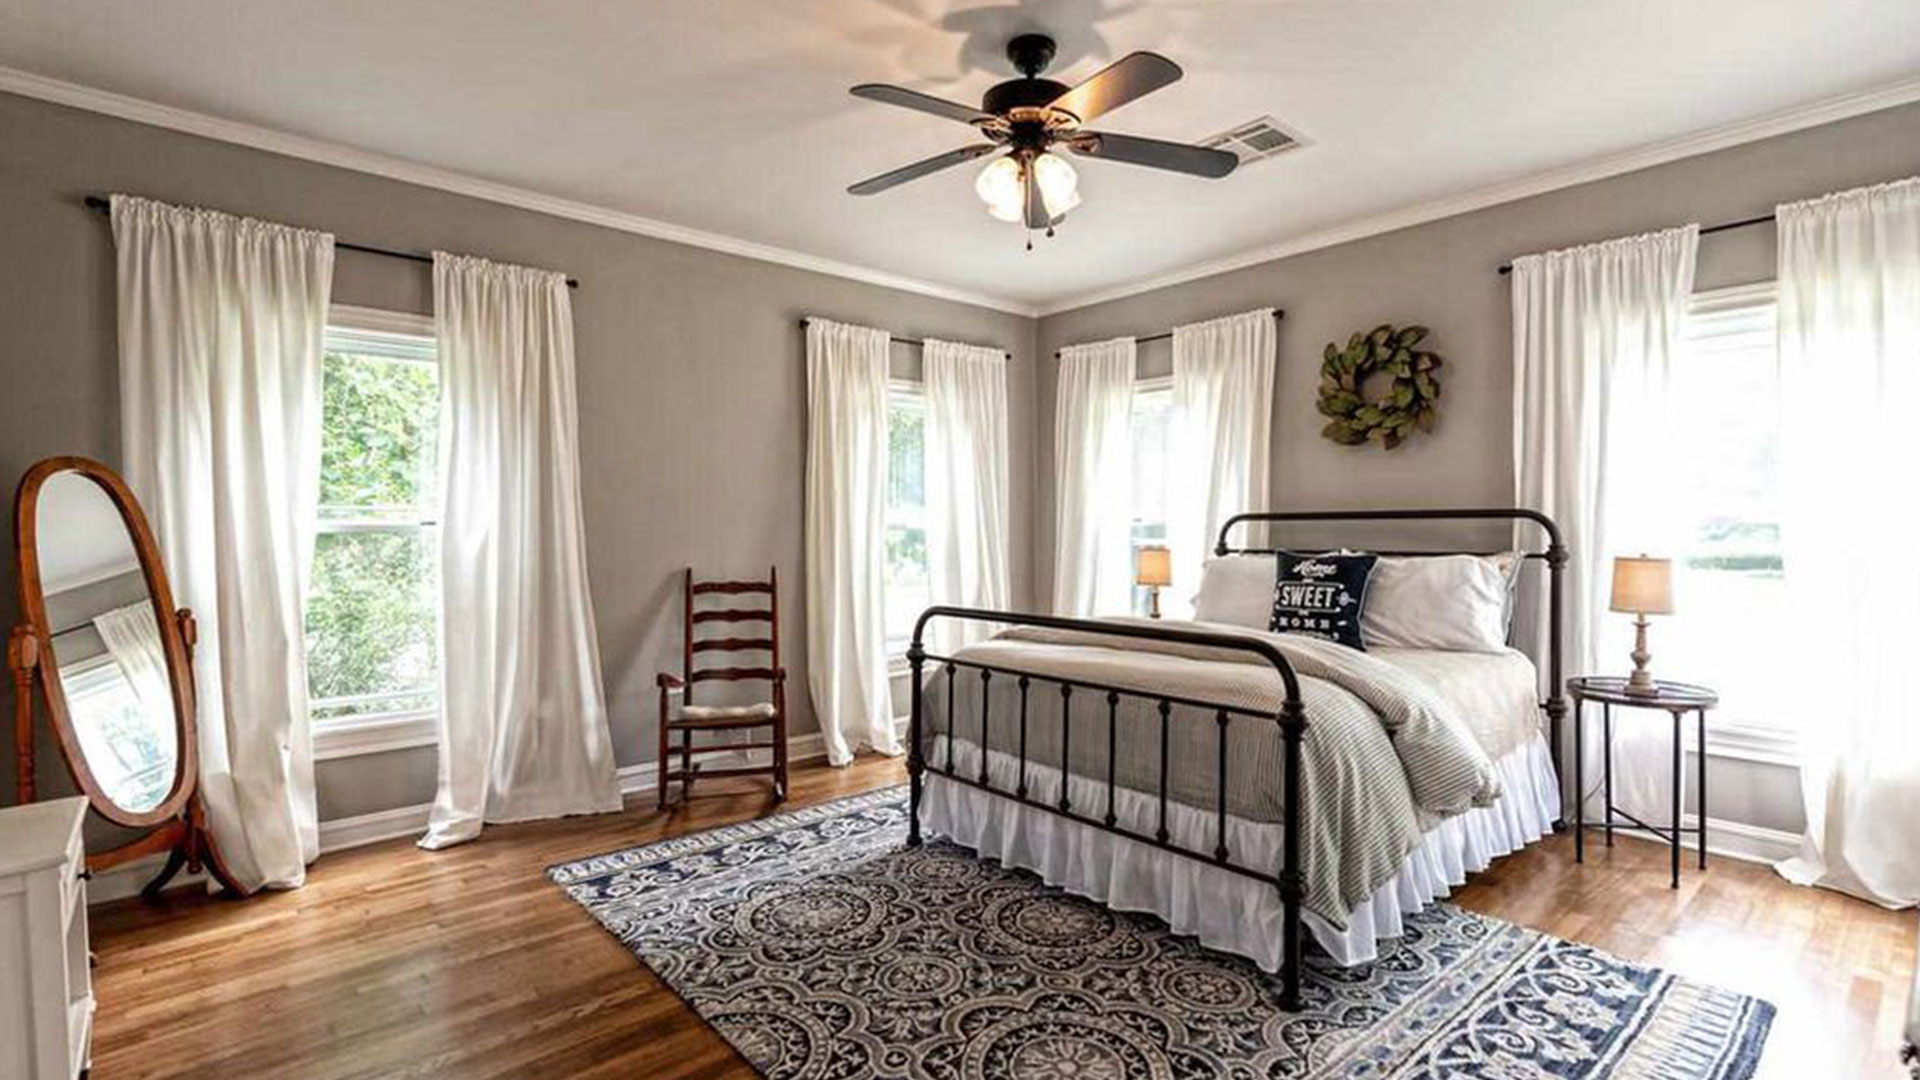 Fixer Upper Dutch Door House_Bedroom